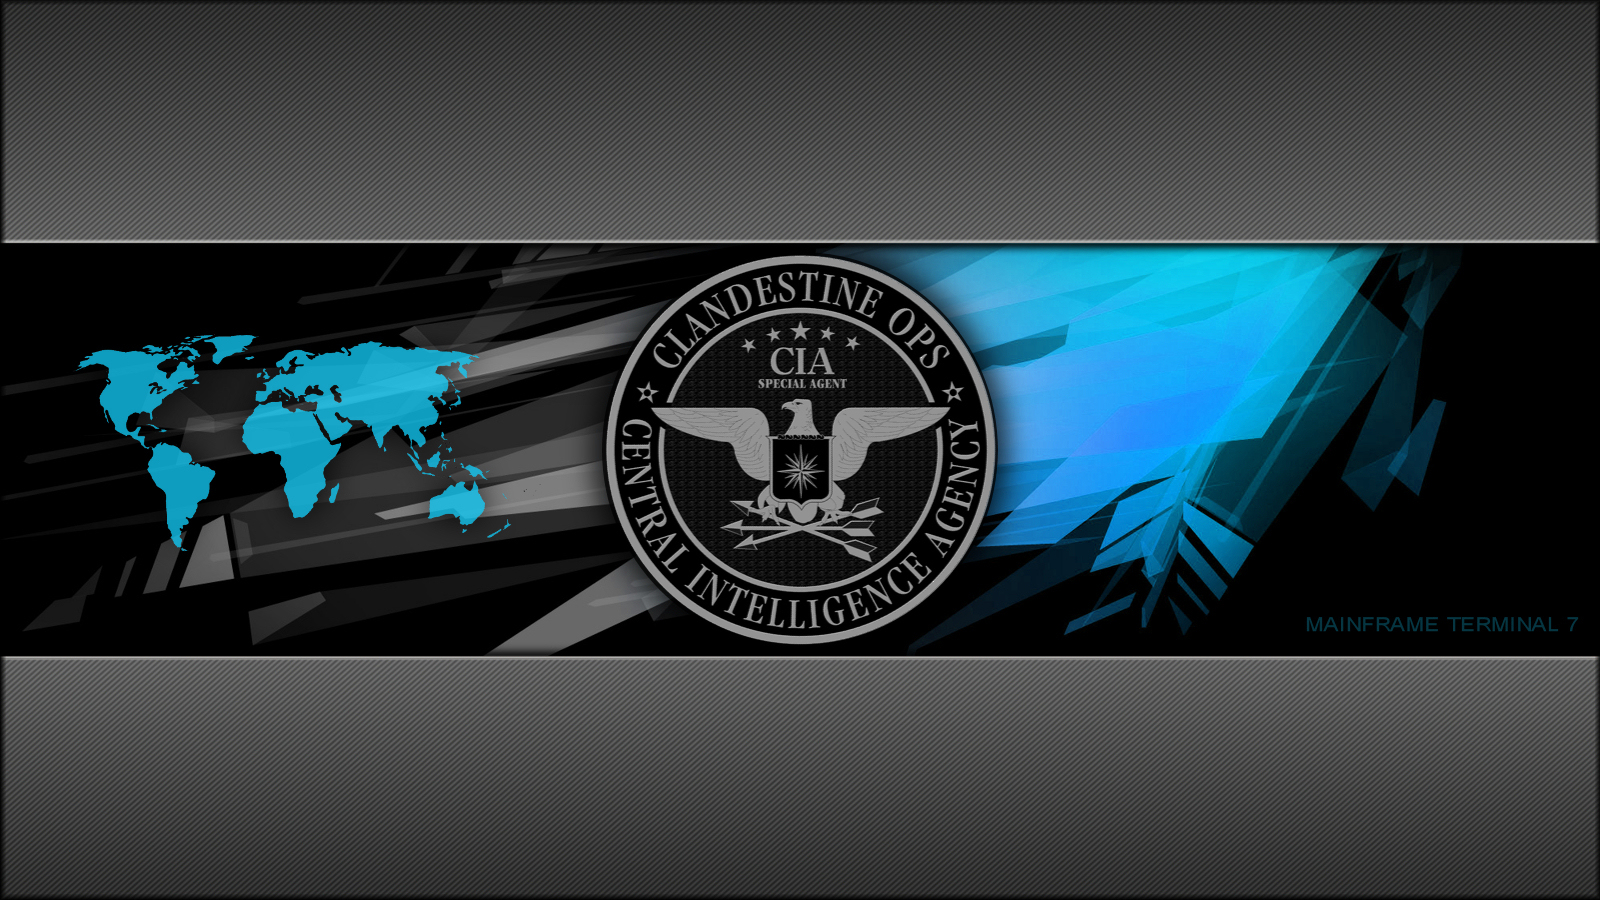 cia 2010 wallpaper by freddiemac on deviantart | Paintball